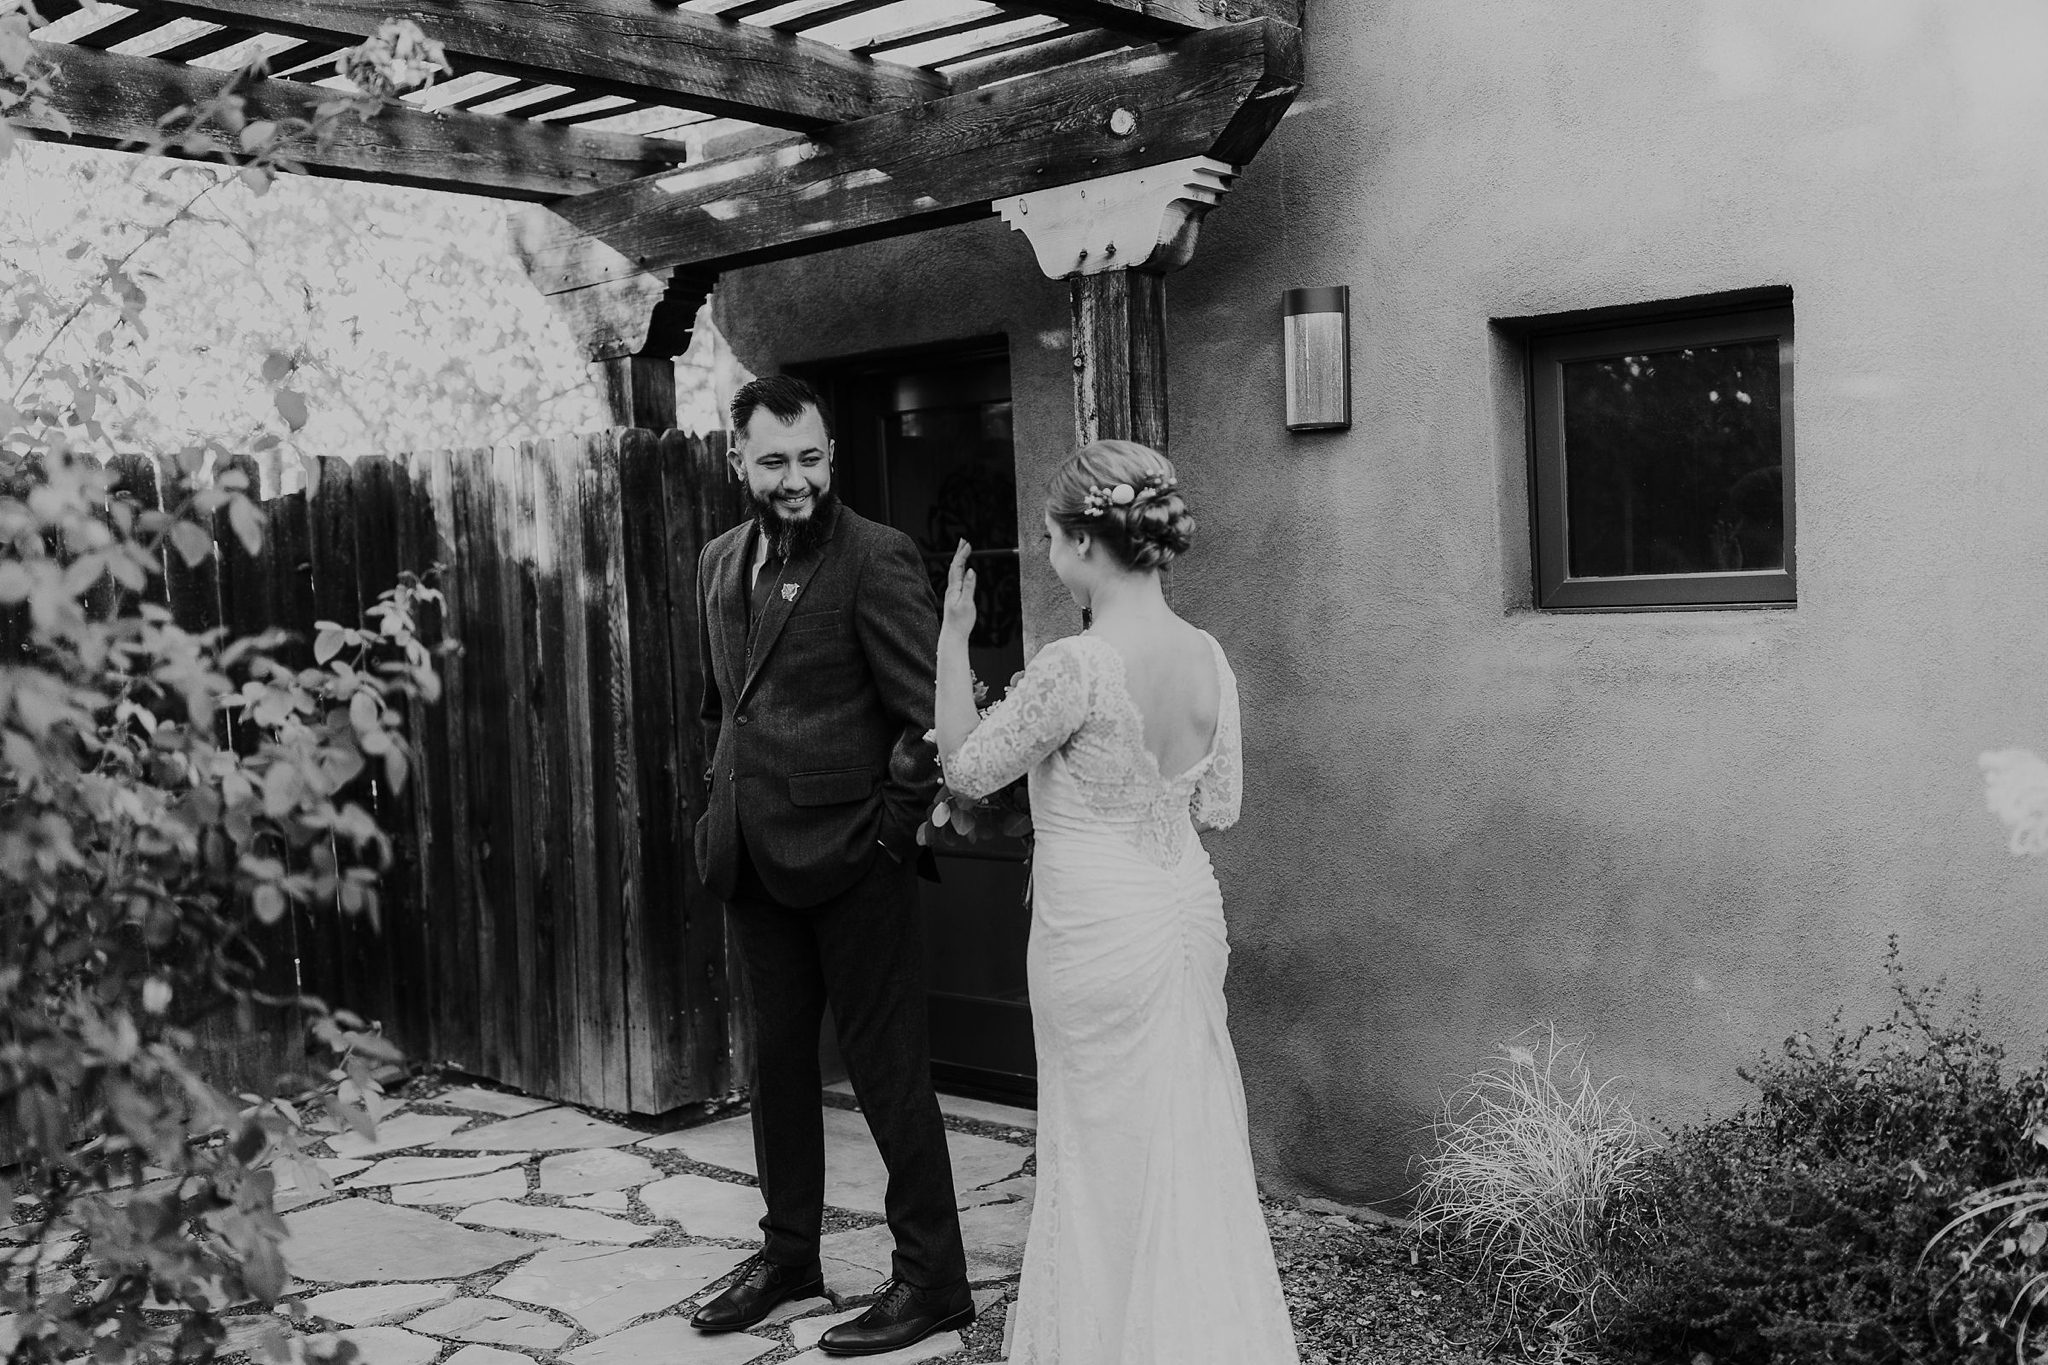 Alicia+lucia+photography+-+albuquerque+wedding+photographer+-+santa+fe+wedding+photography+-+new+mexico+wedding+photographer+-+albuquerque+wedding+-+sarabande+bed+breakfast+-+bed+and+breakfast+wedding_0022.jpg